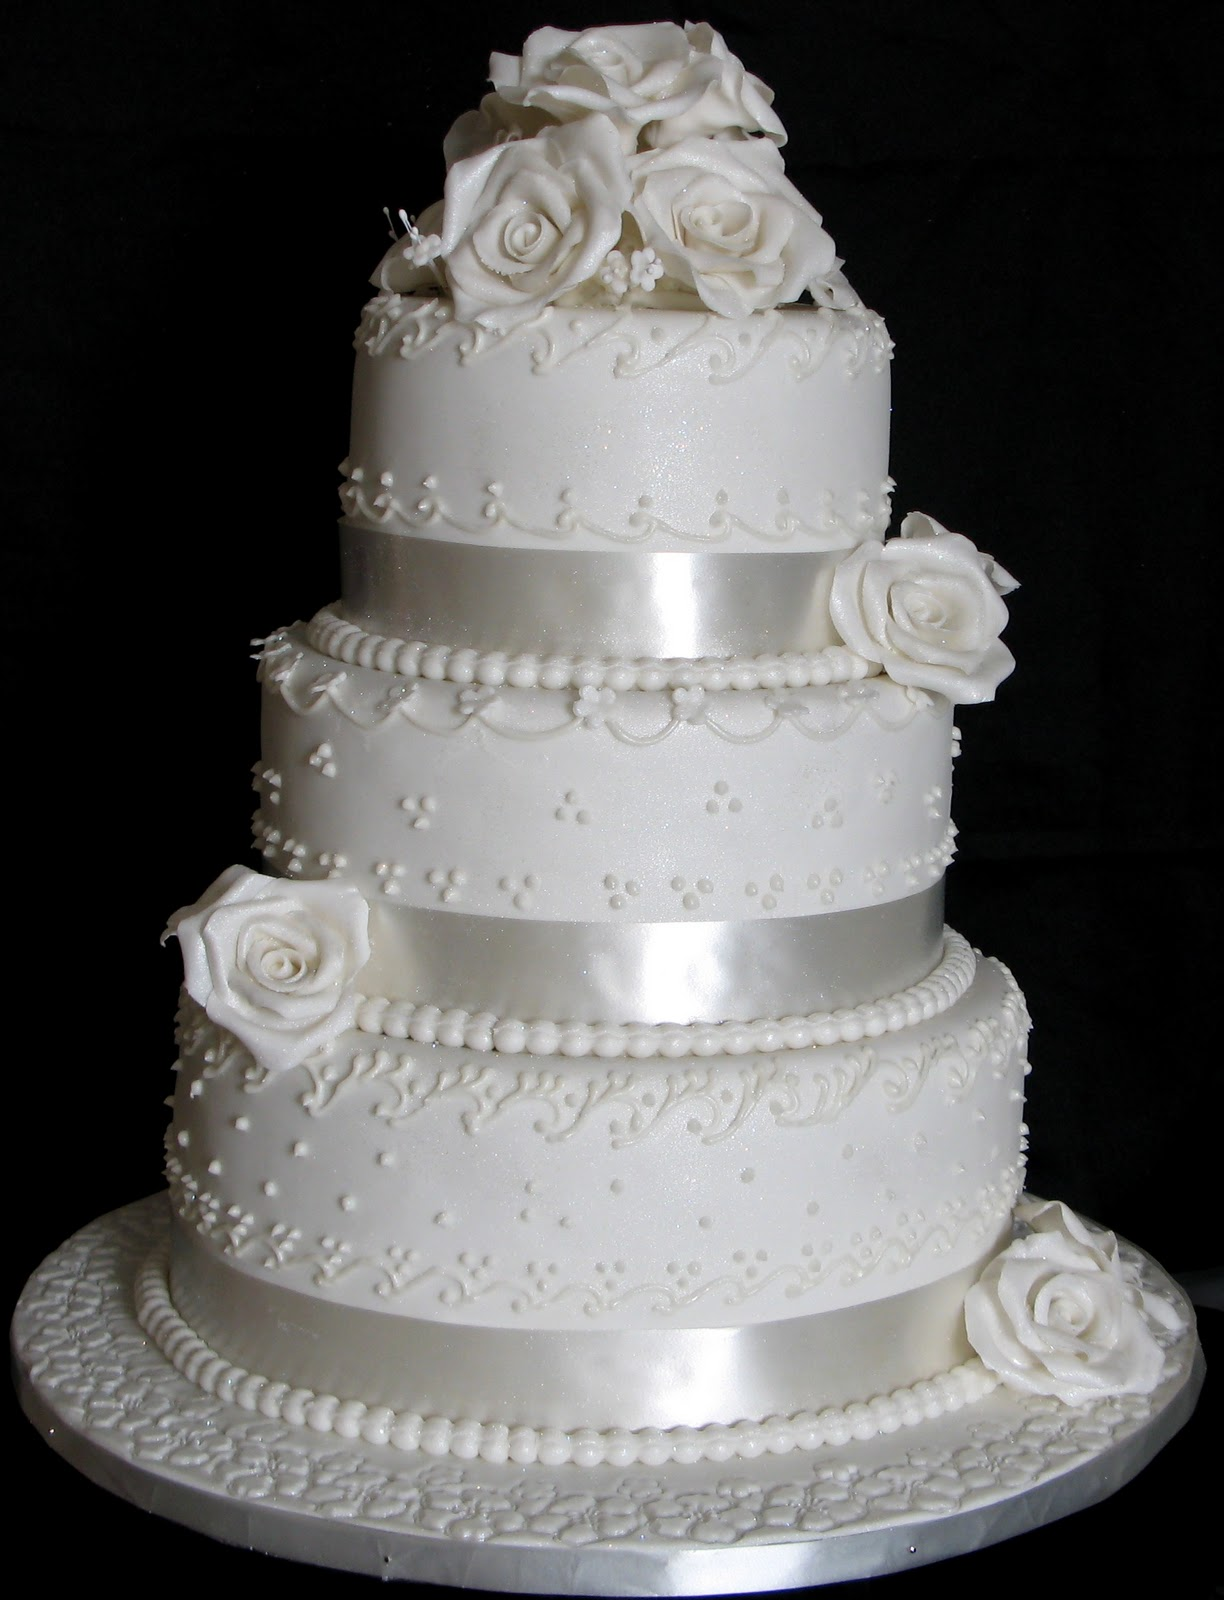 Sugarcraft by Soni Three Layer Wedding Cake White Roses